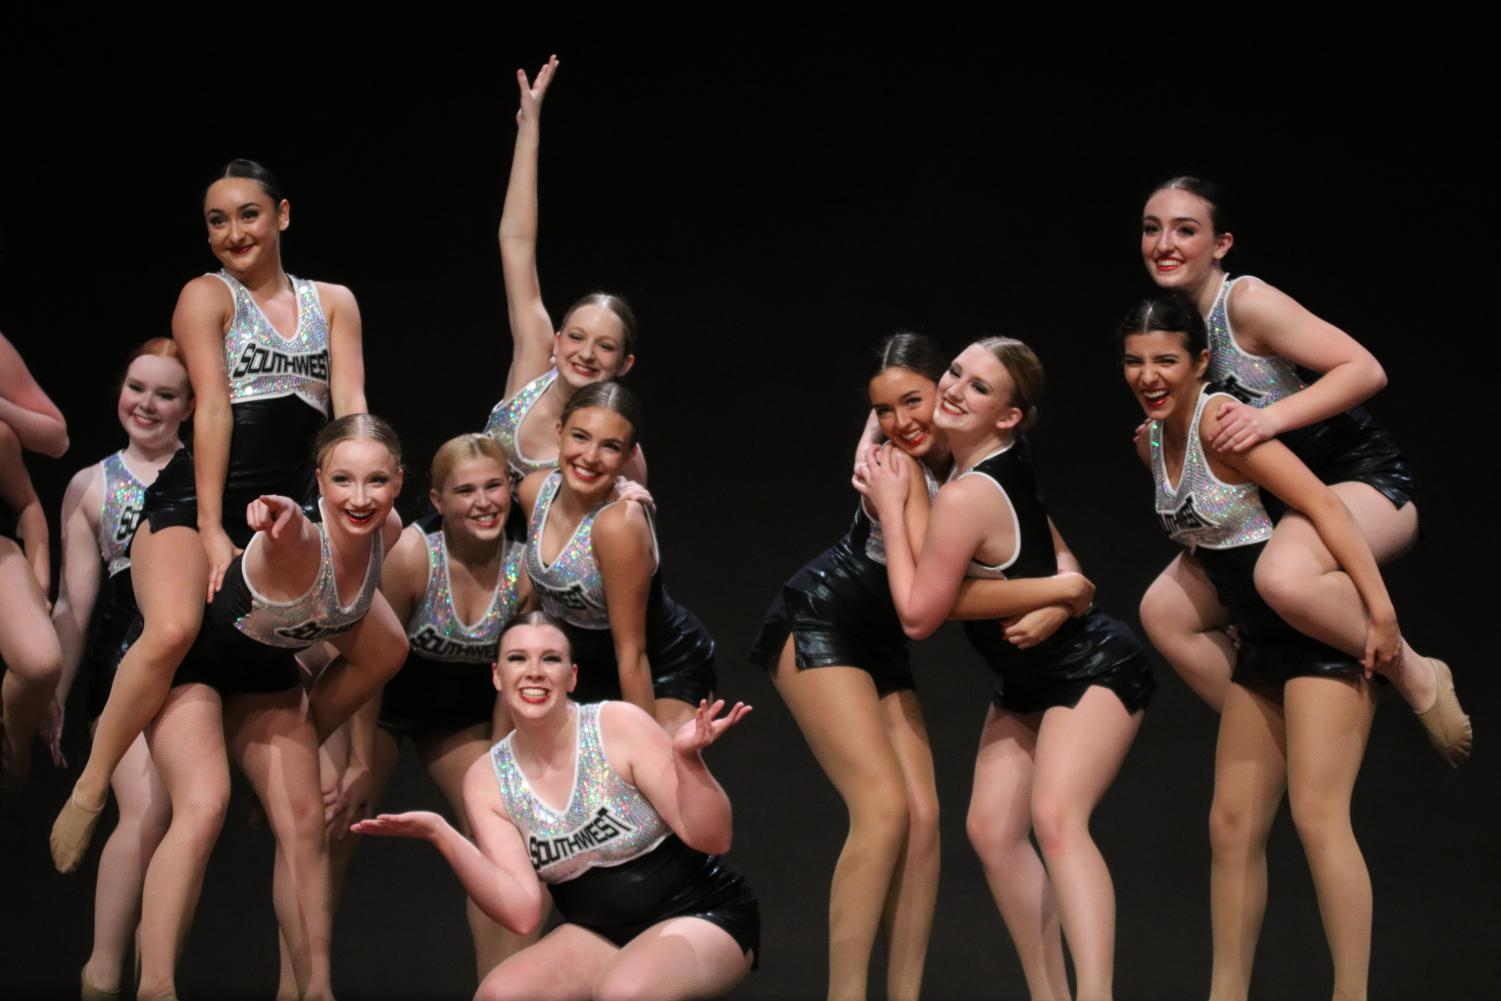 Happy as can be, the Glitter Girls finish out their performance at the Spring Show.